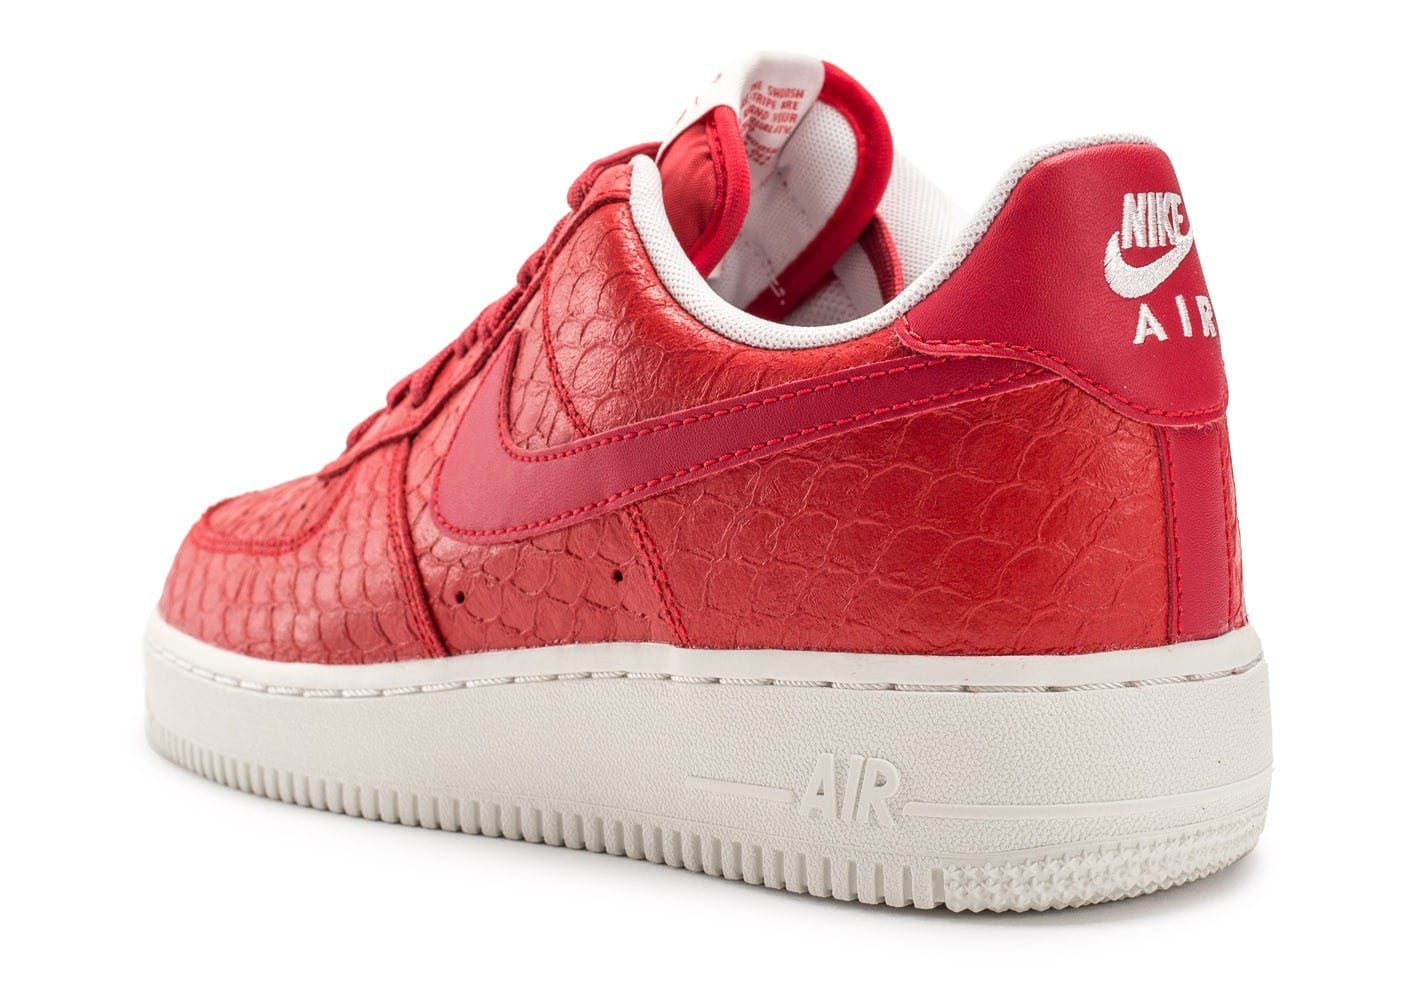 Nike Sportswear AIR FORCE 1 '07 LV8 - Baskets basses rouge fikmyf7